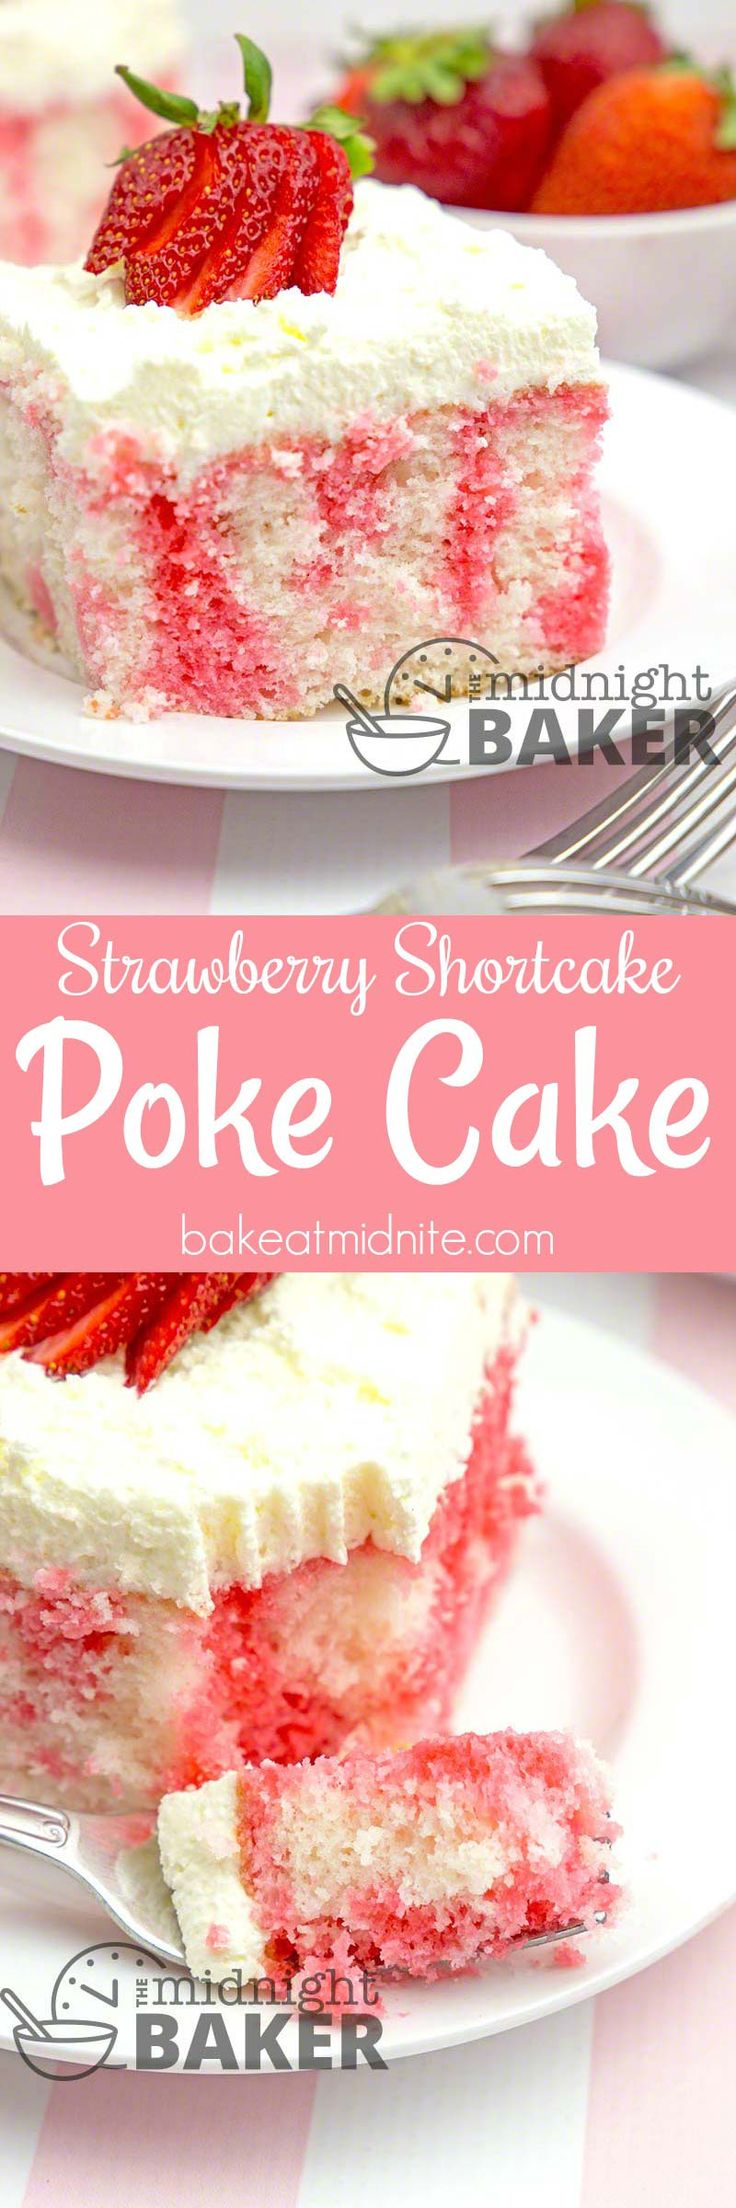 Here's the delicious flavor of strawberry shortcake in an easy-to-make poke cake.